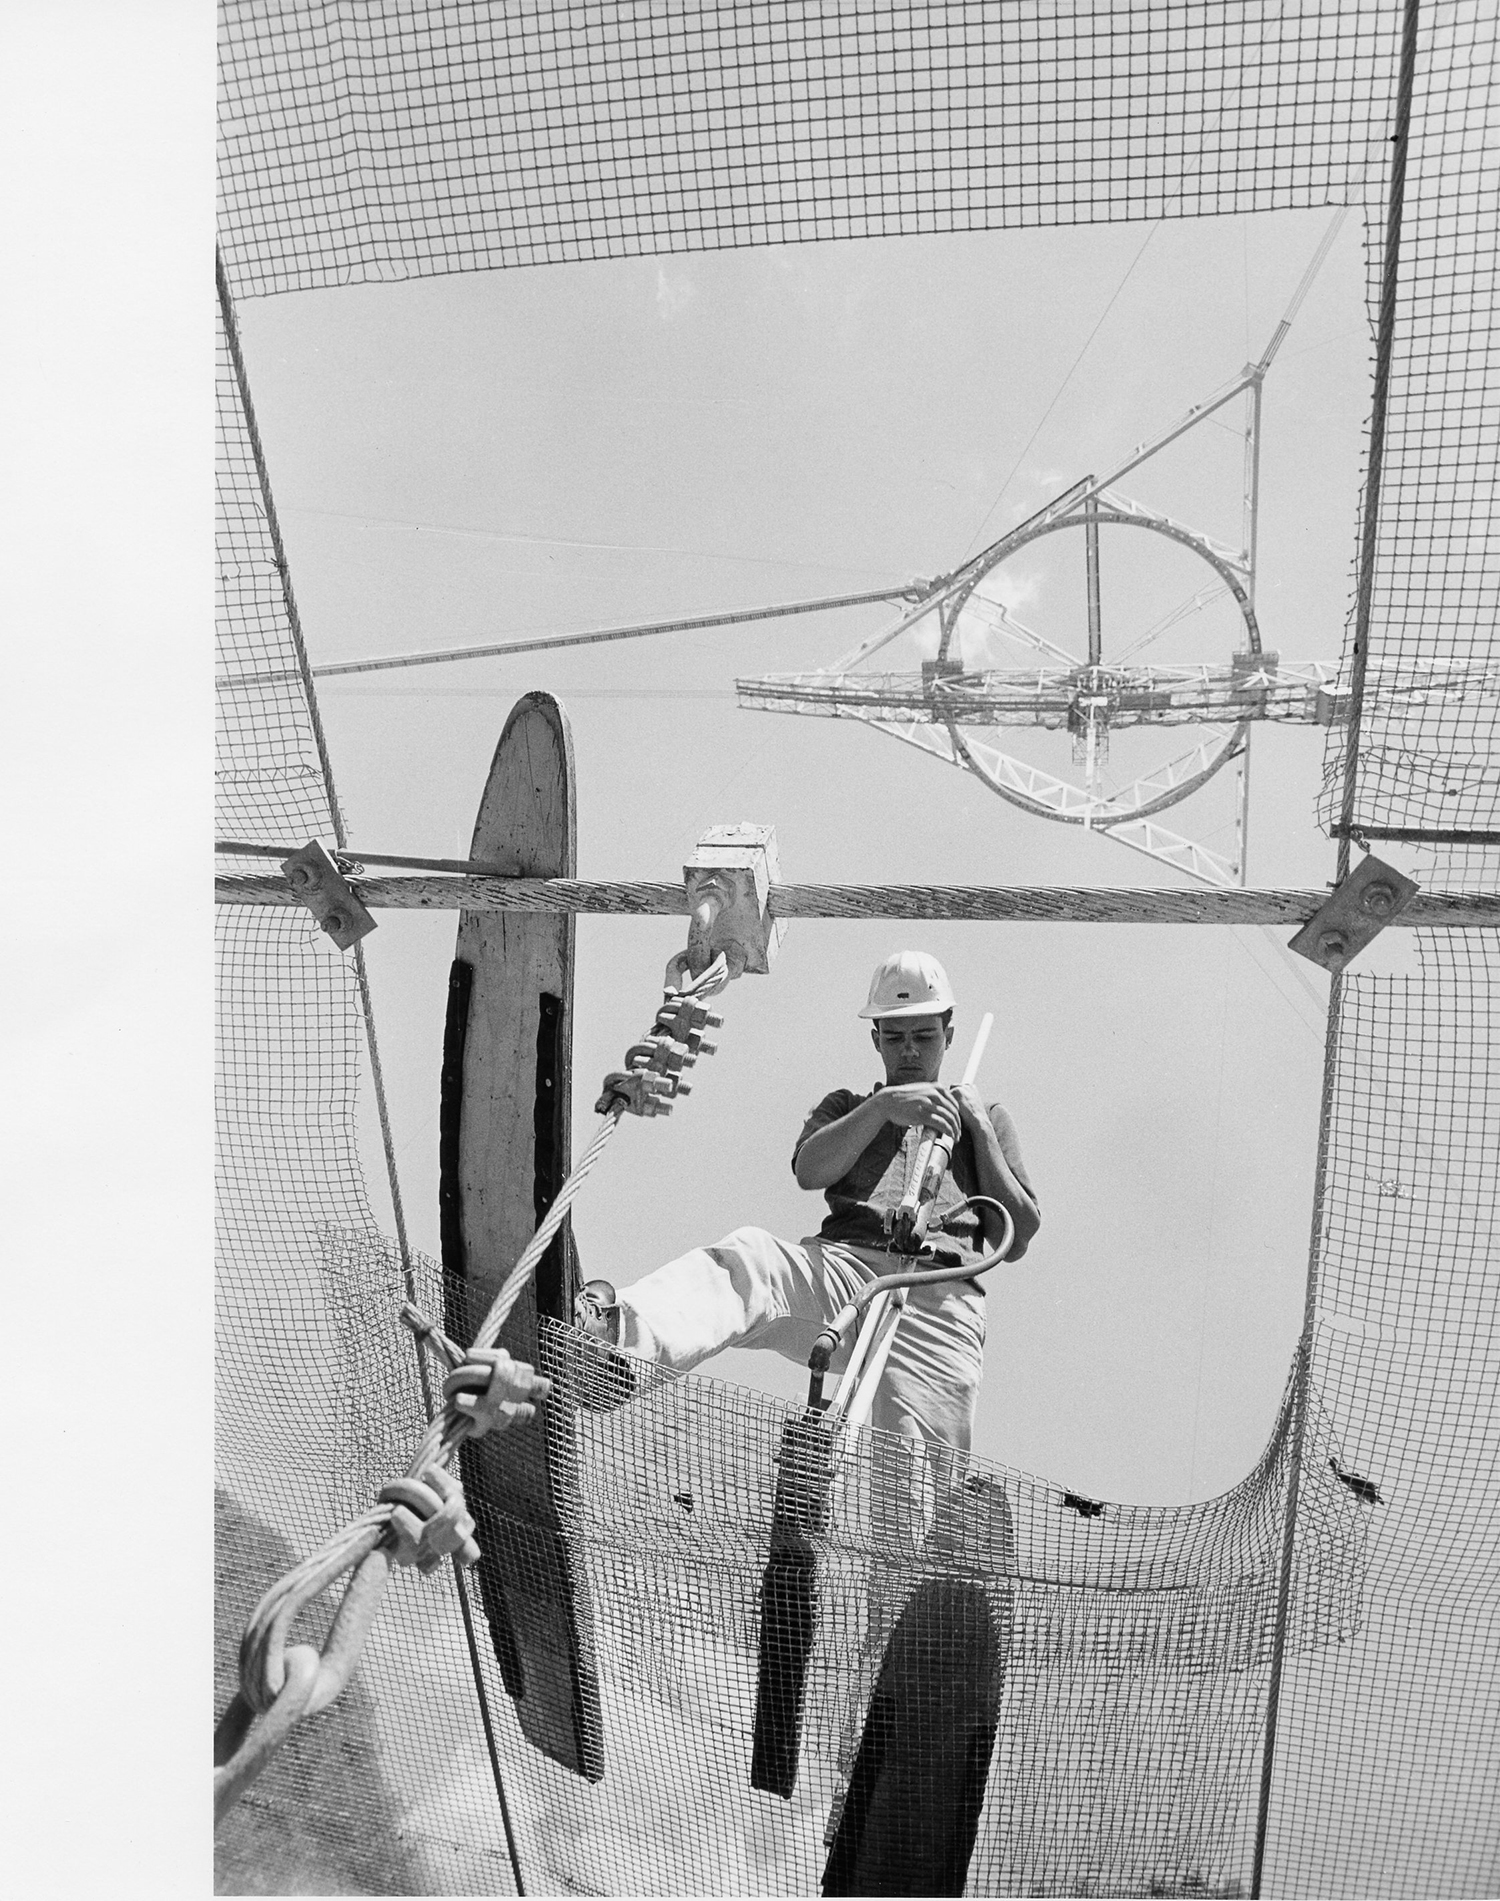 A worker on the Arecibo dish